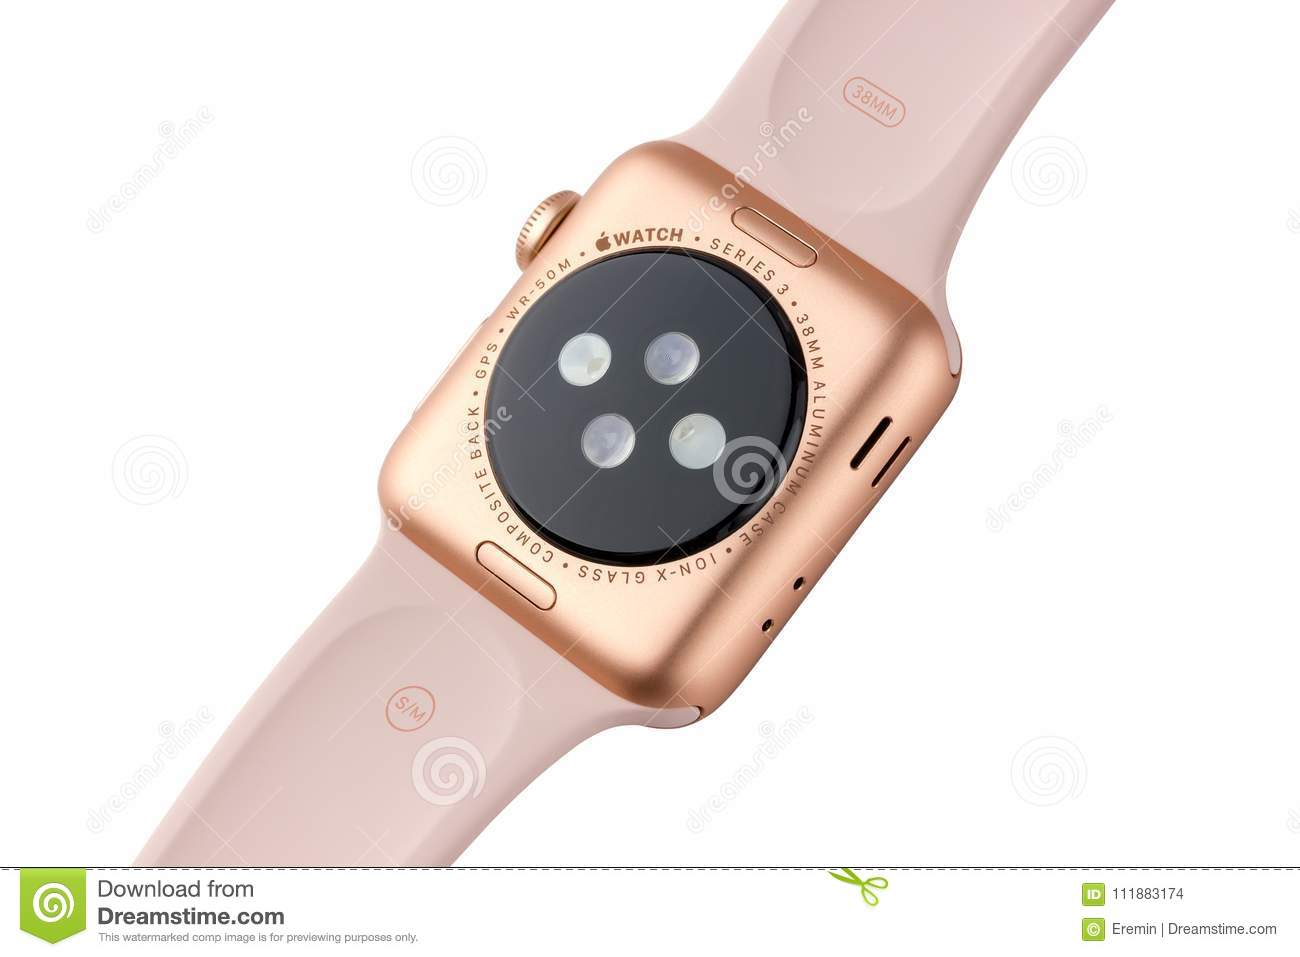 February 2018 Apple Watch Series 3 Colors Gold Aluminum Case With Pink Sand Sport Band Editorial Stock Image Image Of Company Focus 111883174